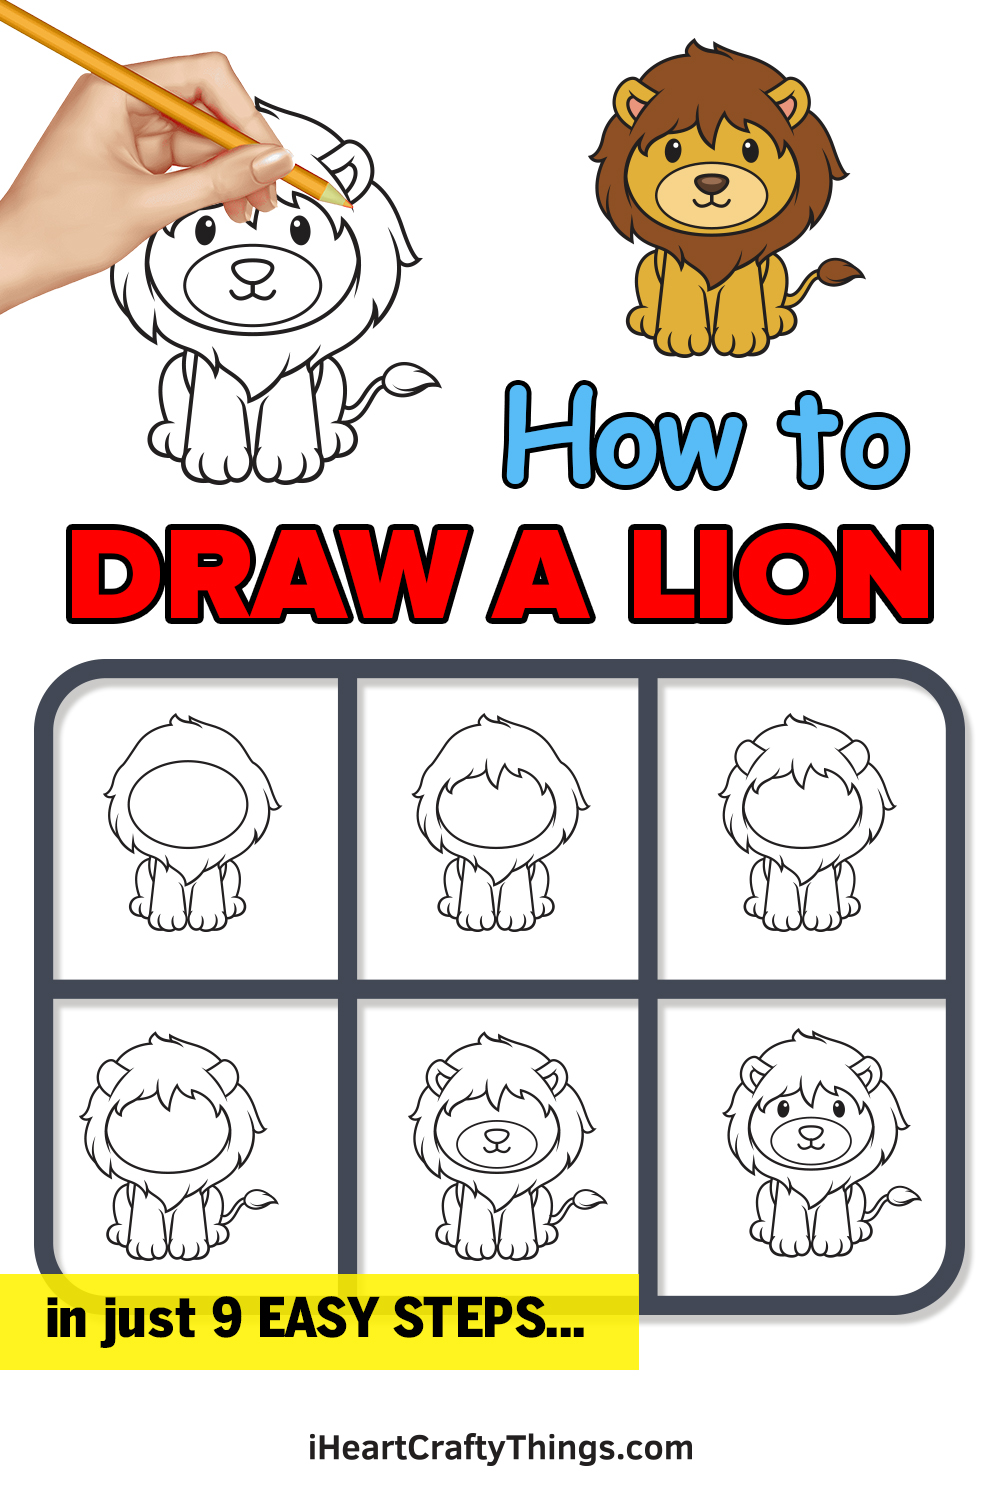 how to draw a lion in 9 easy steps